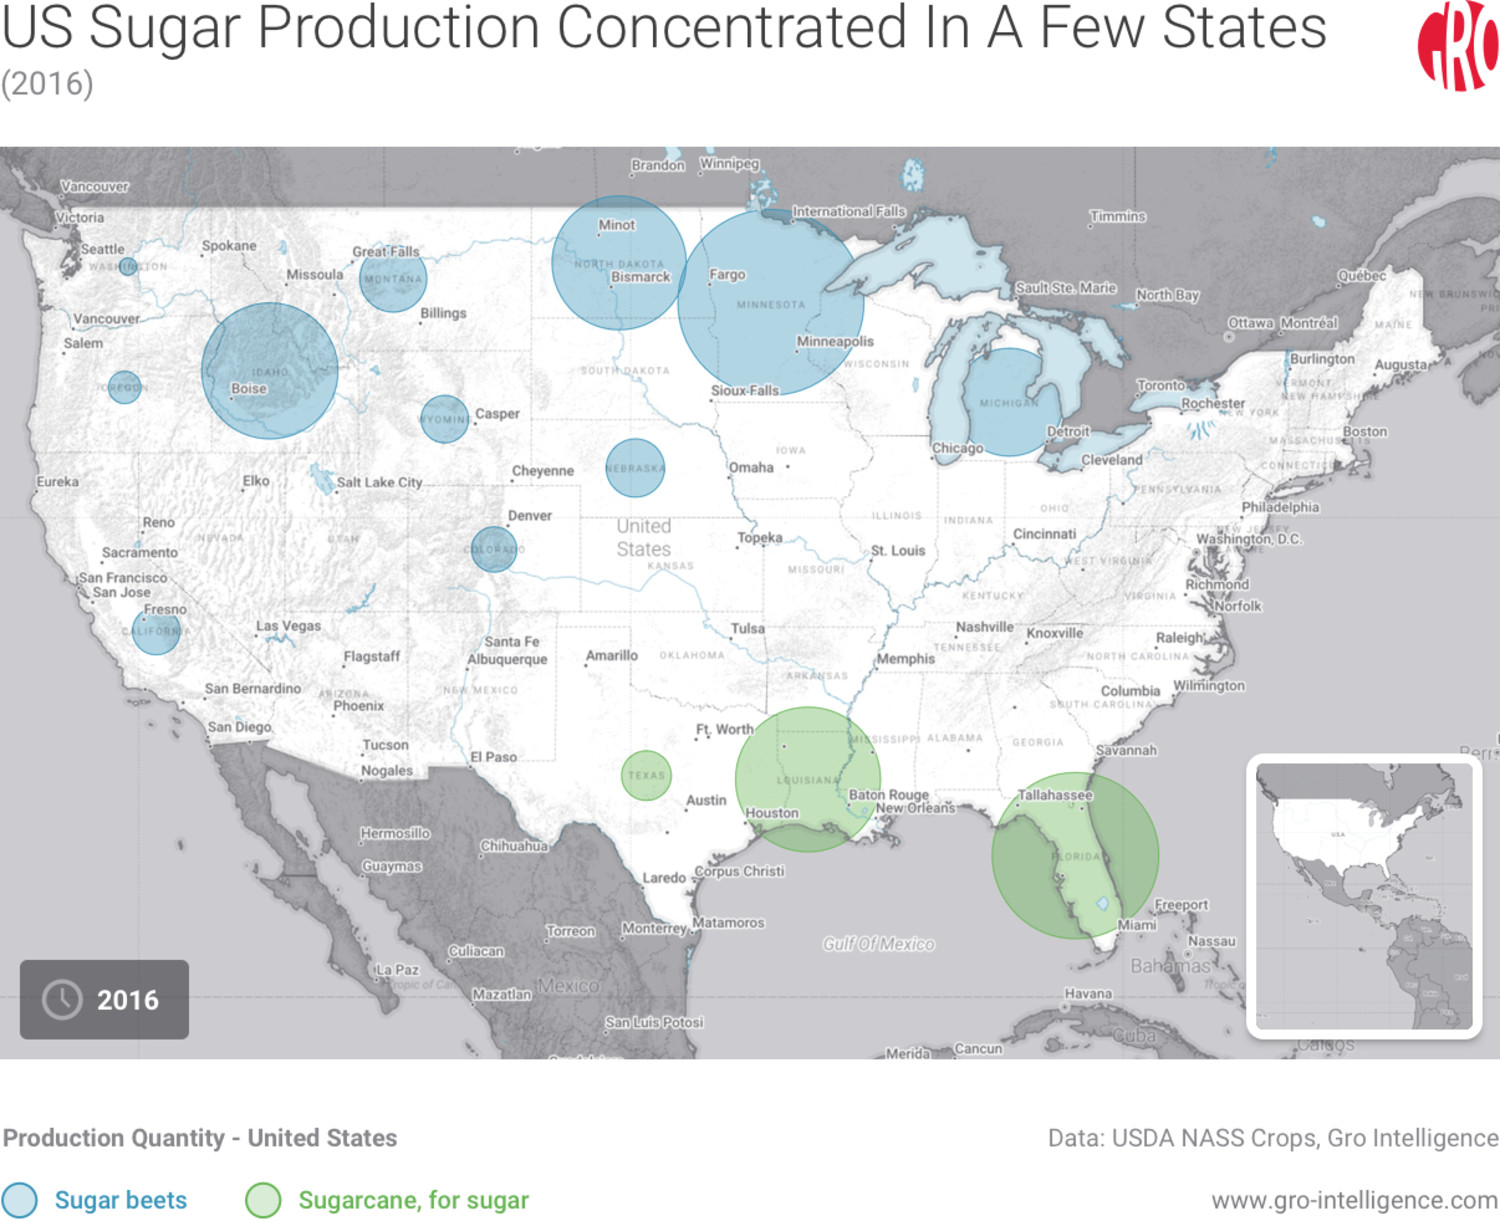 US Sugar Production Concentrated in a Few States